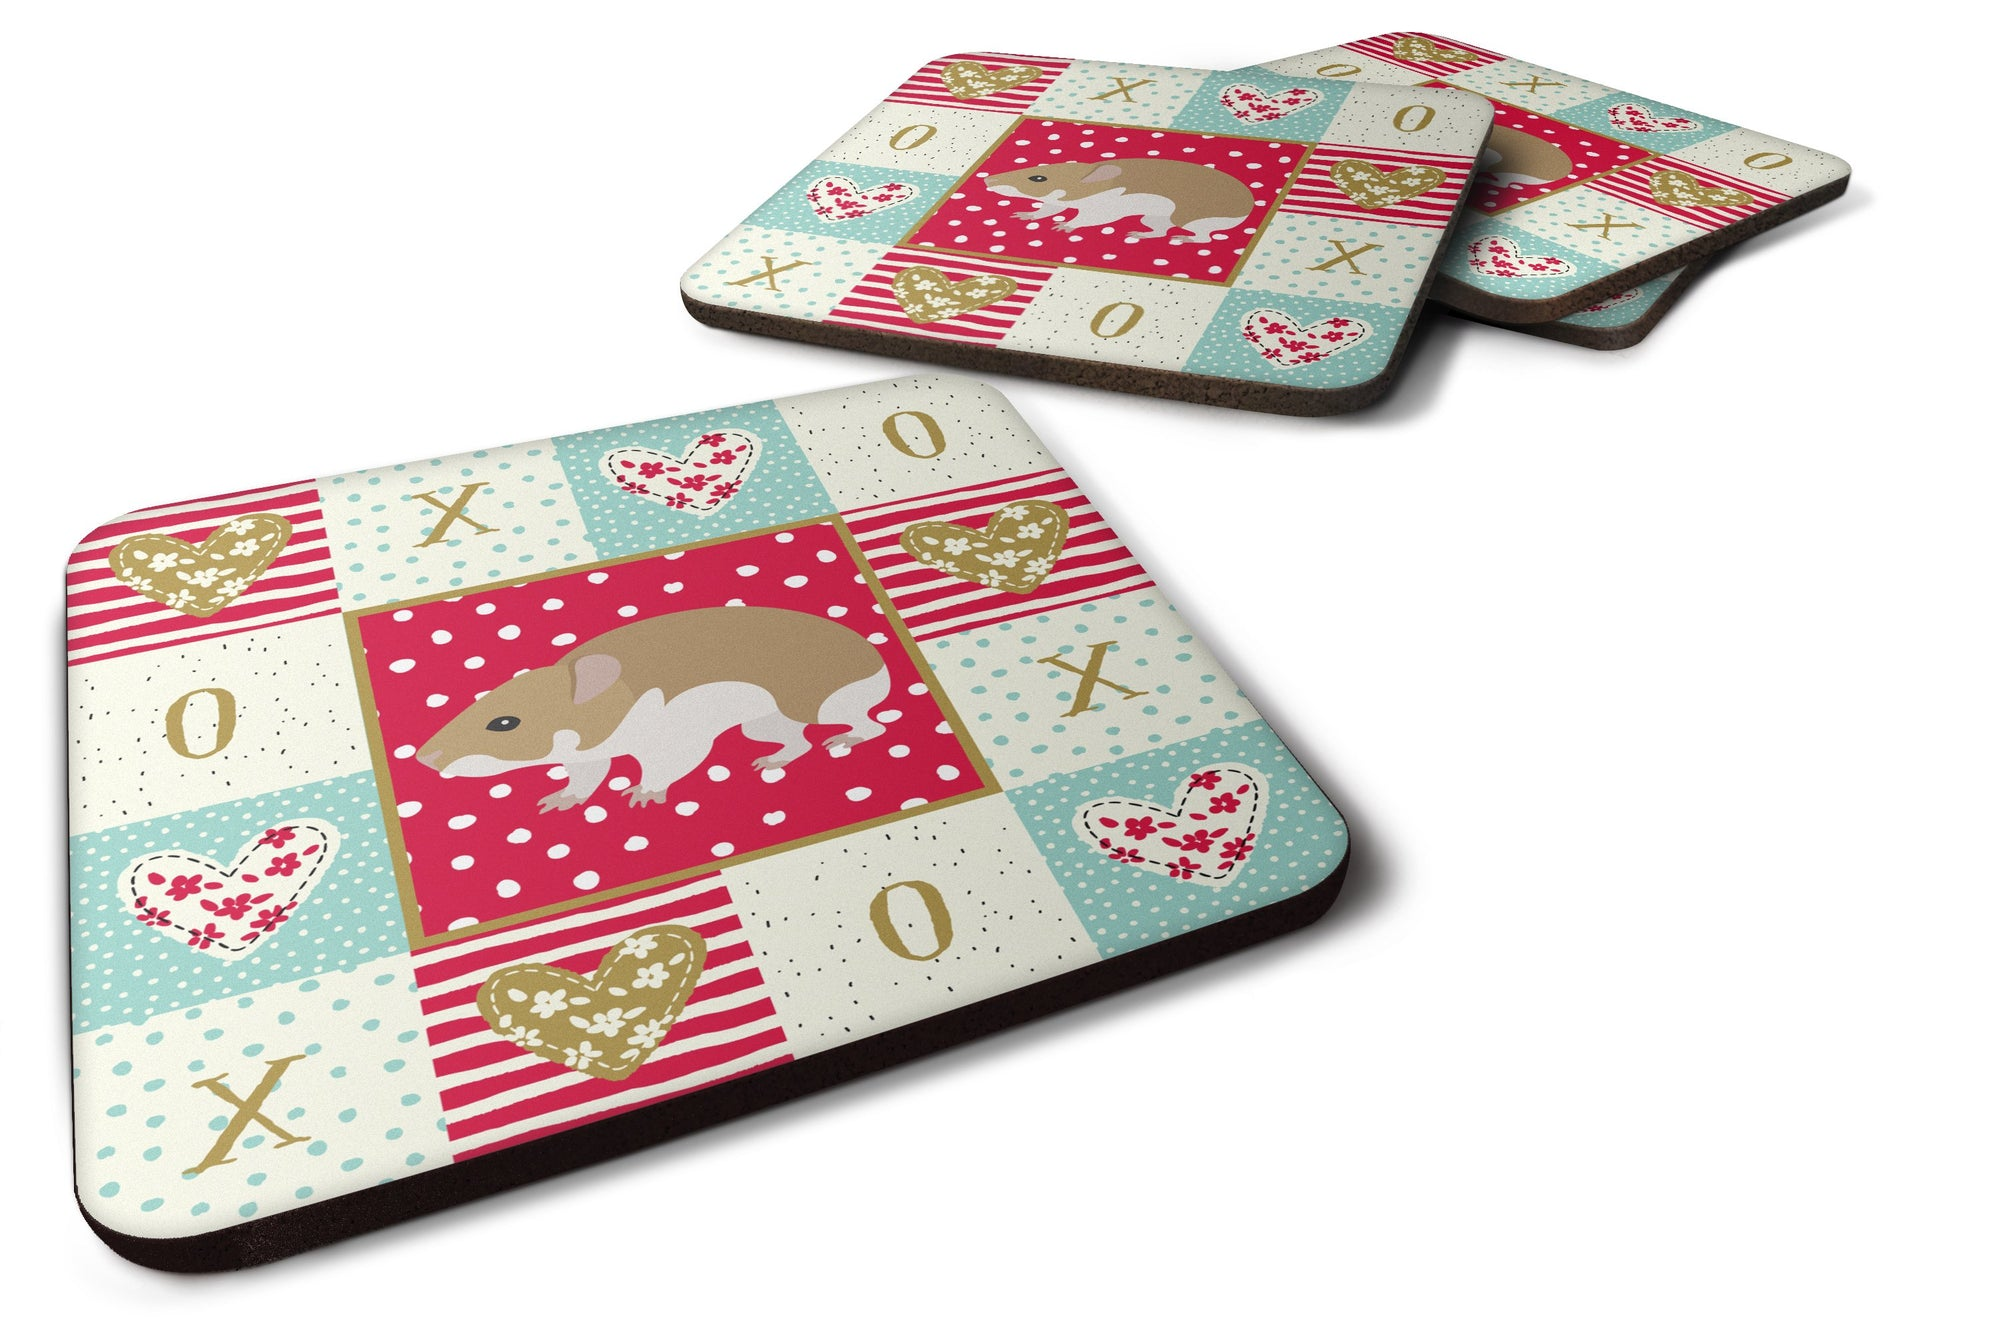 Set of 4 Turkish Hamster Love Foam Coasters Set of 4 CK5445FC by Caroline's Treasures